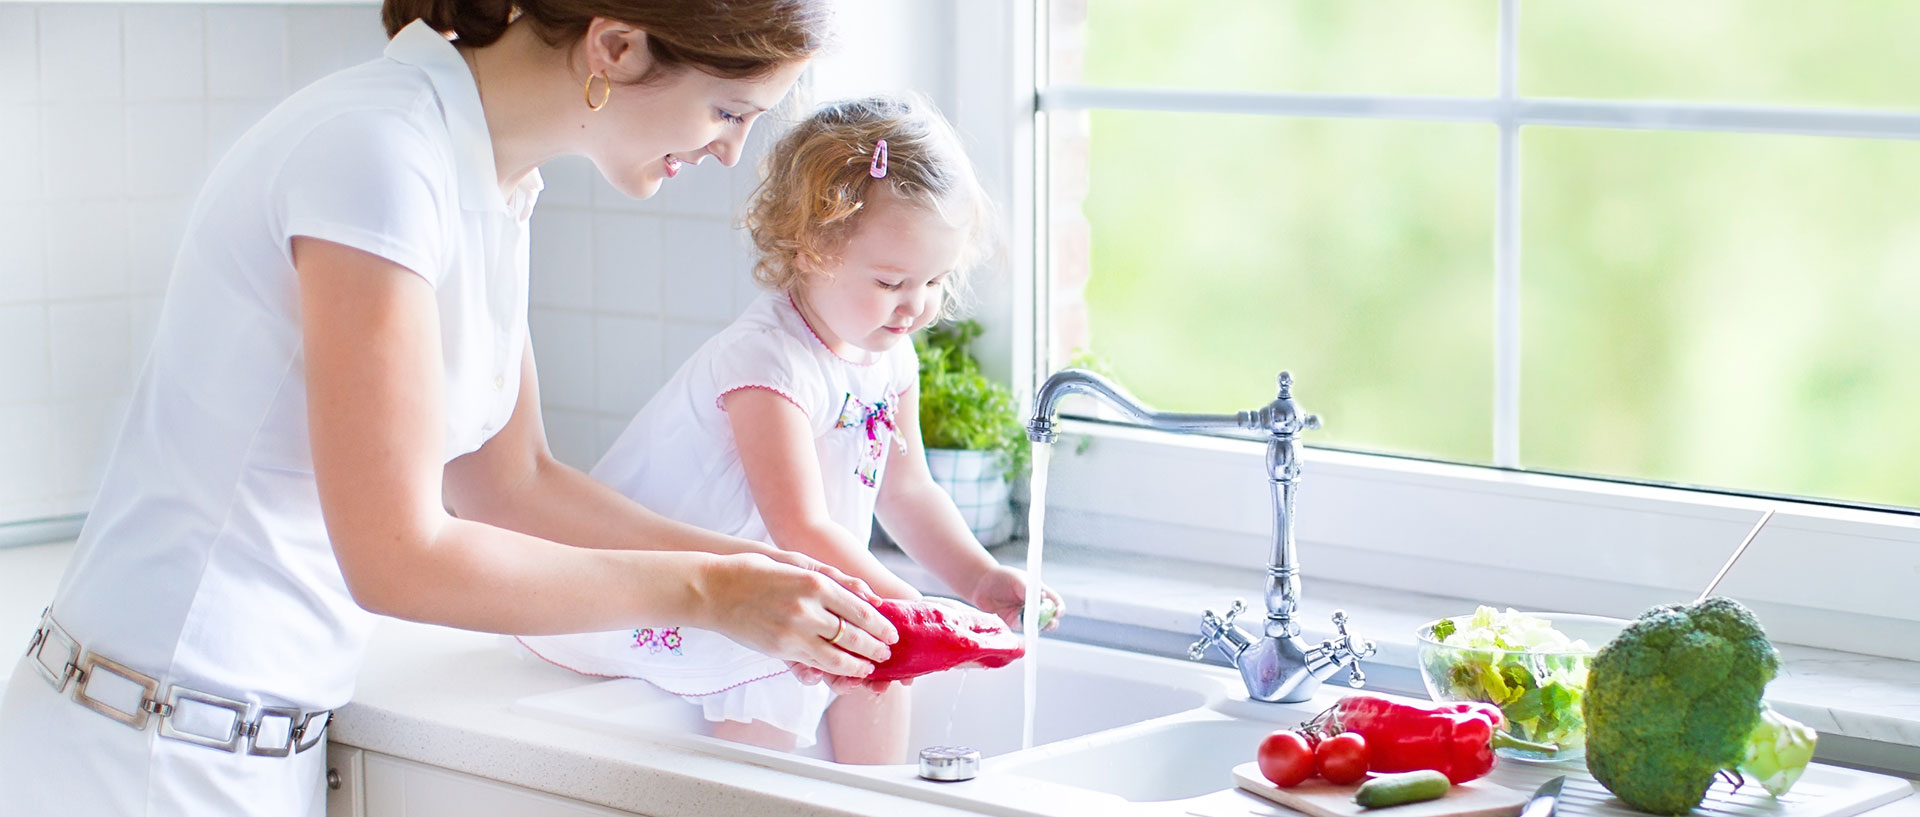 A mother and her young daughter washing vegetables in their kitchen sink.